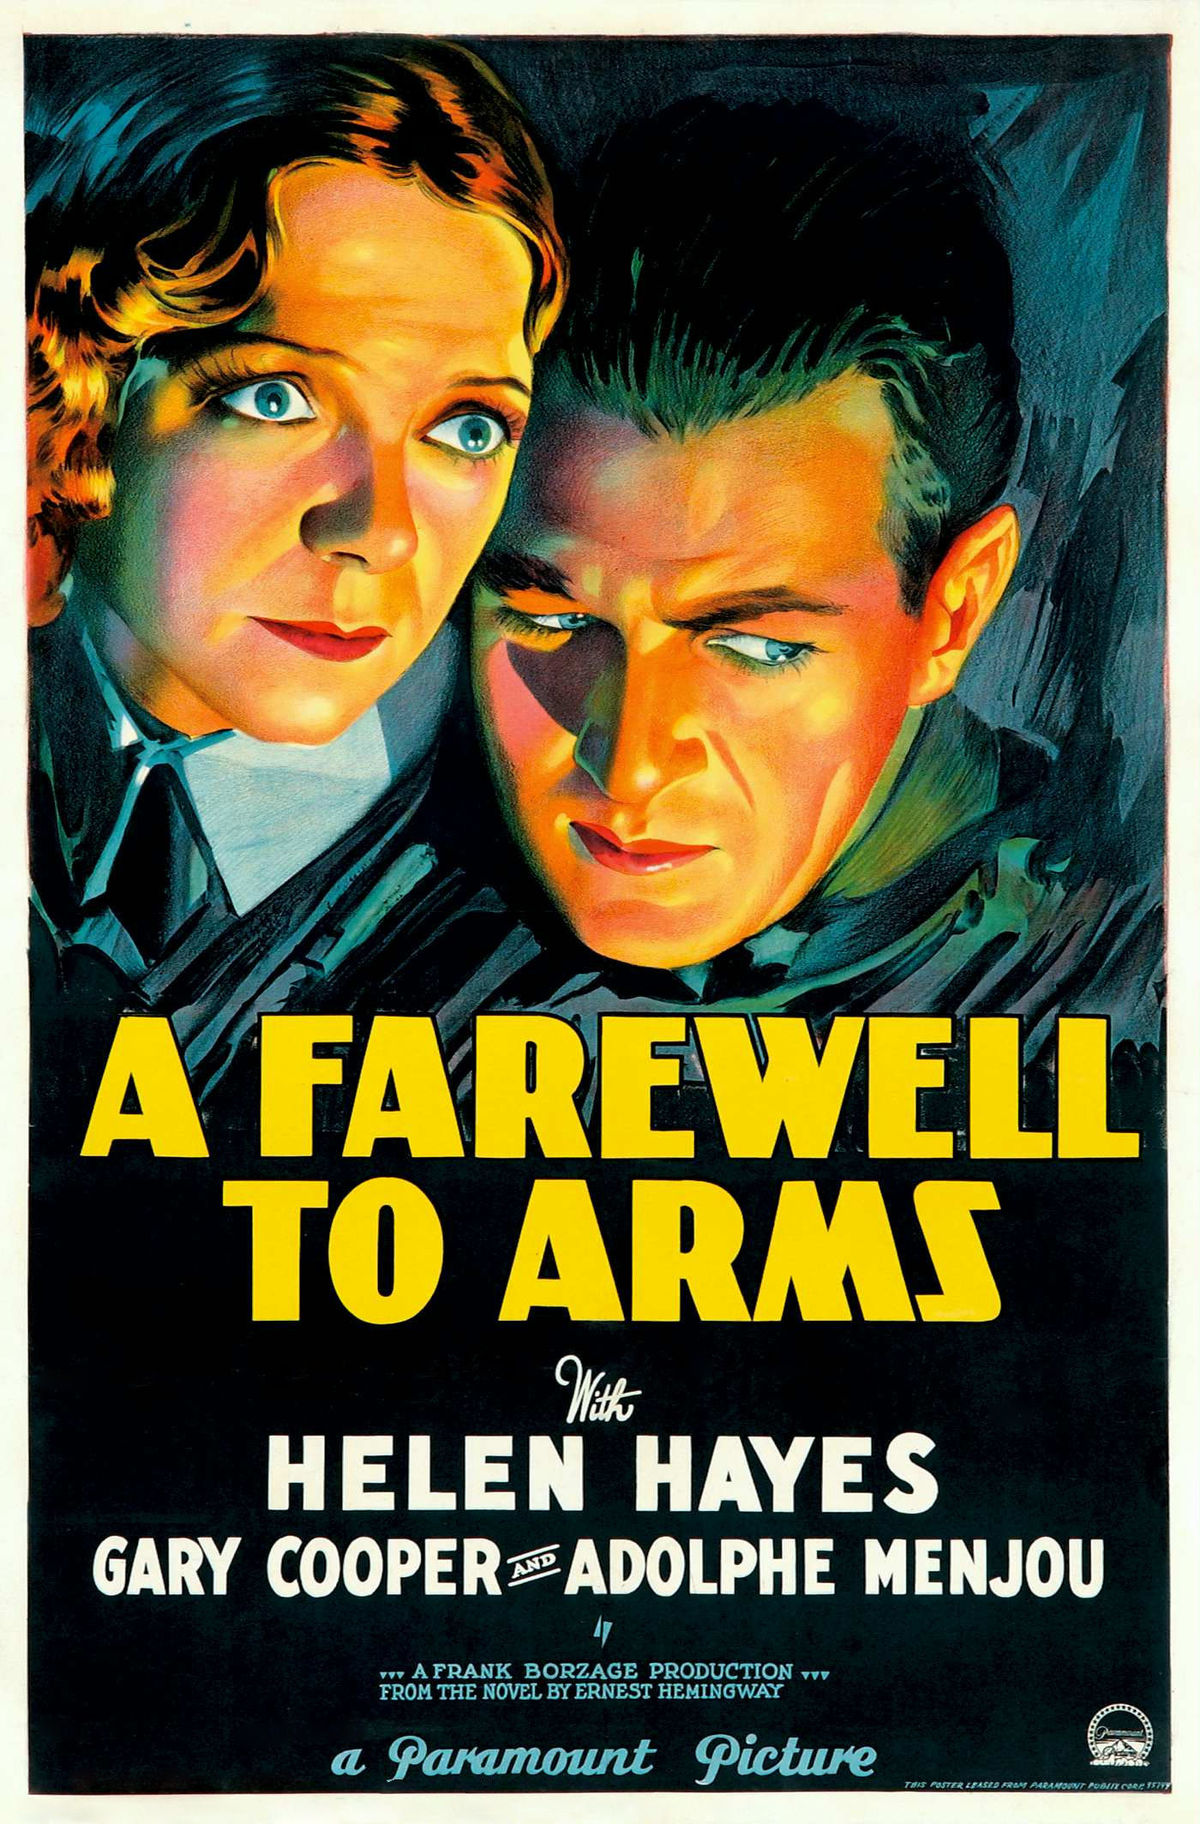 A Farewell to Arms (1932 film) - Wikipedia